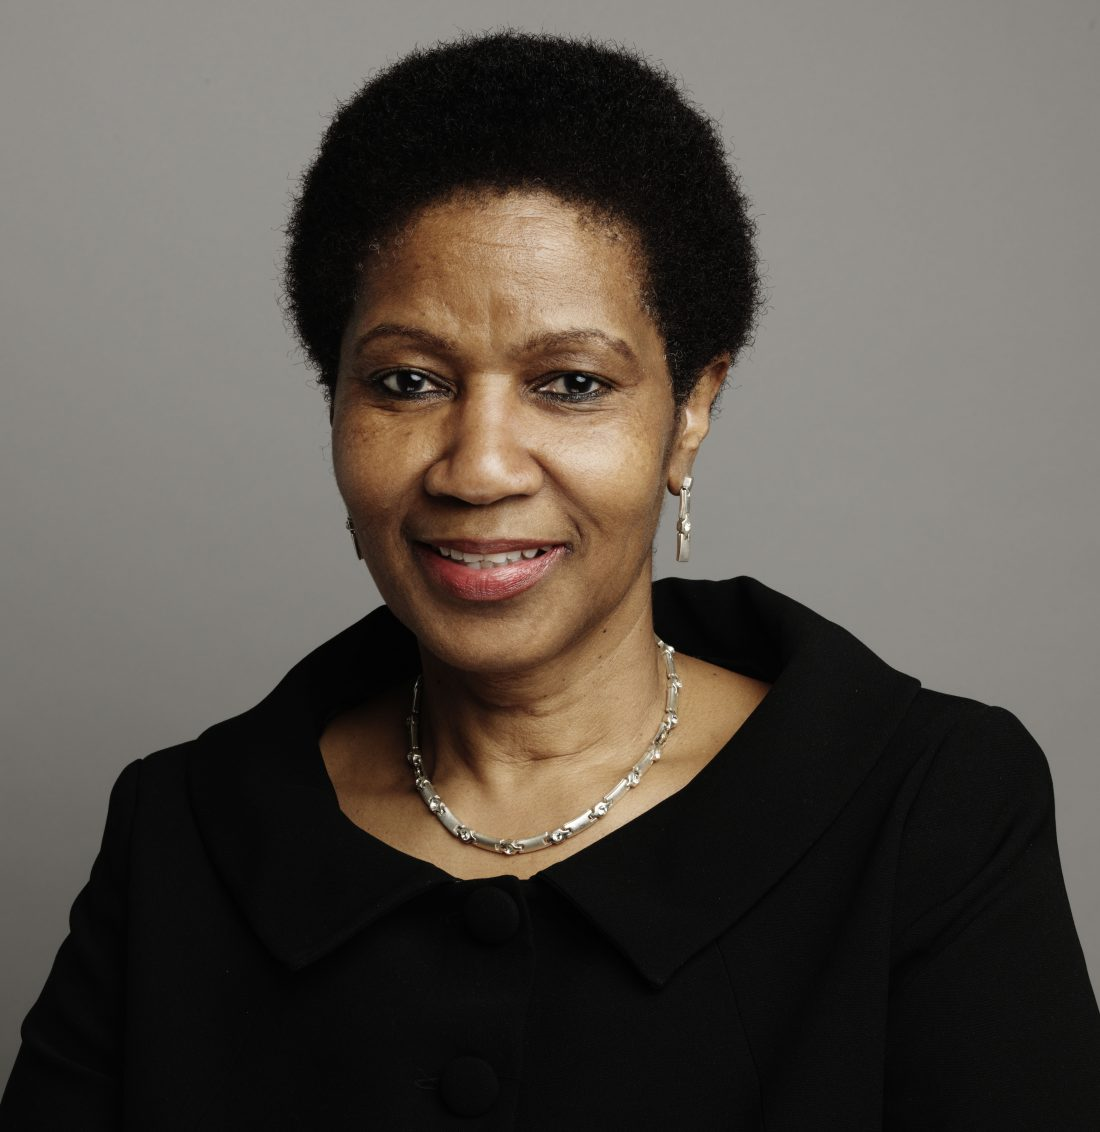 UN Women Executive Director Phumzile Mlambo-Ngcuka Official Portrait